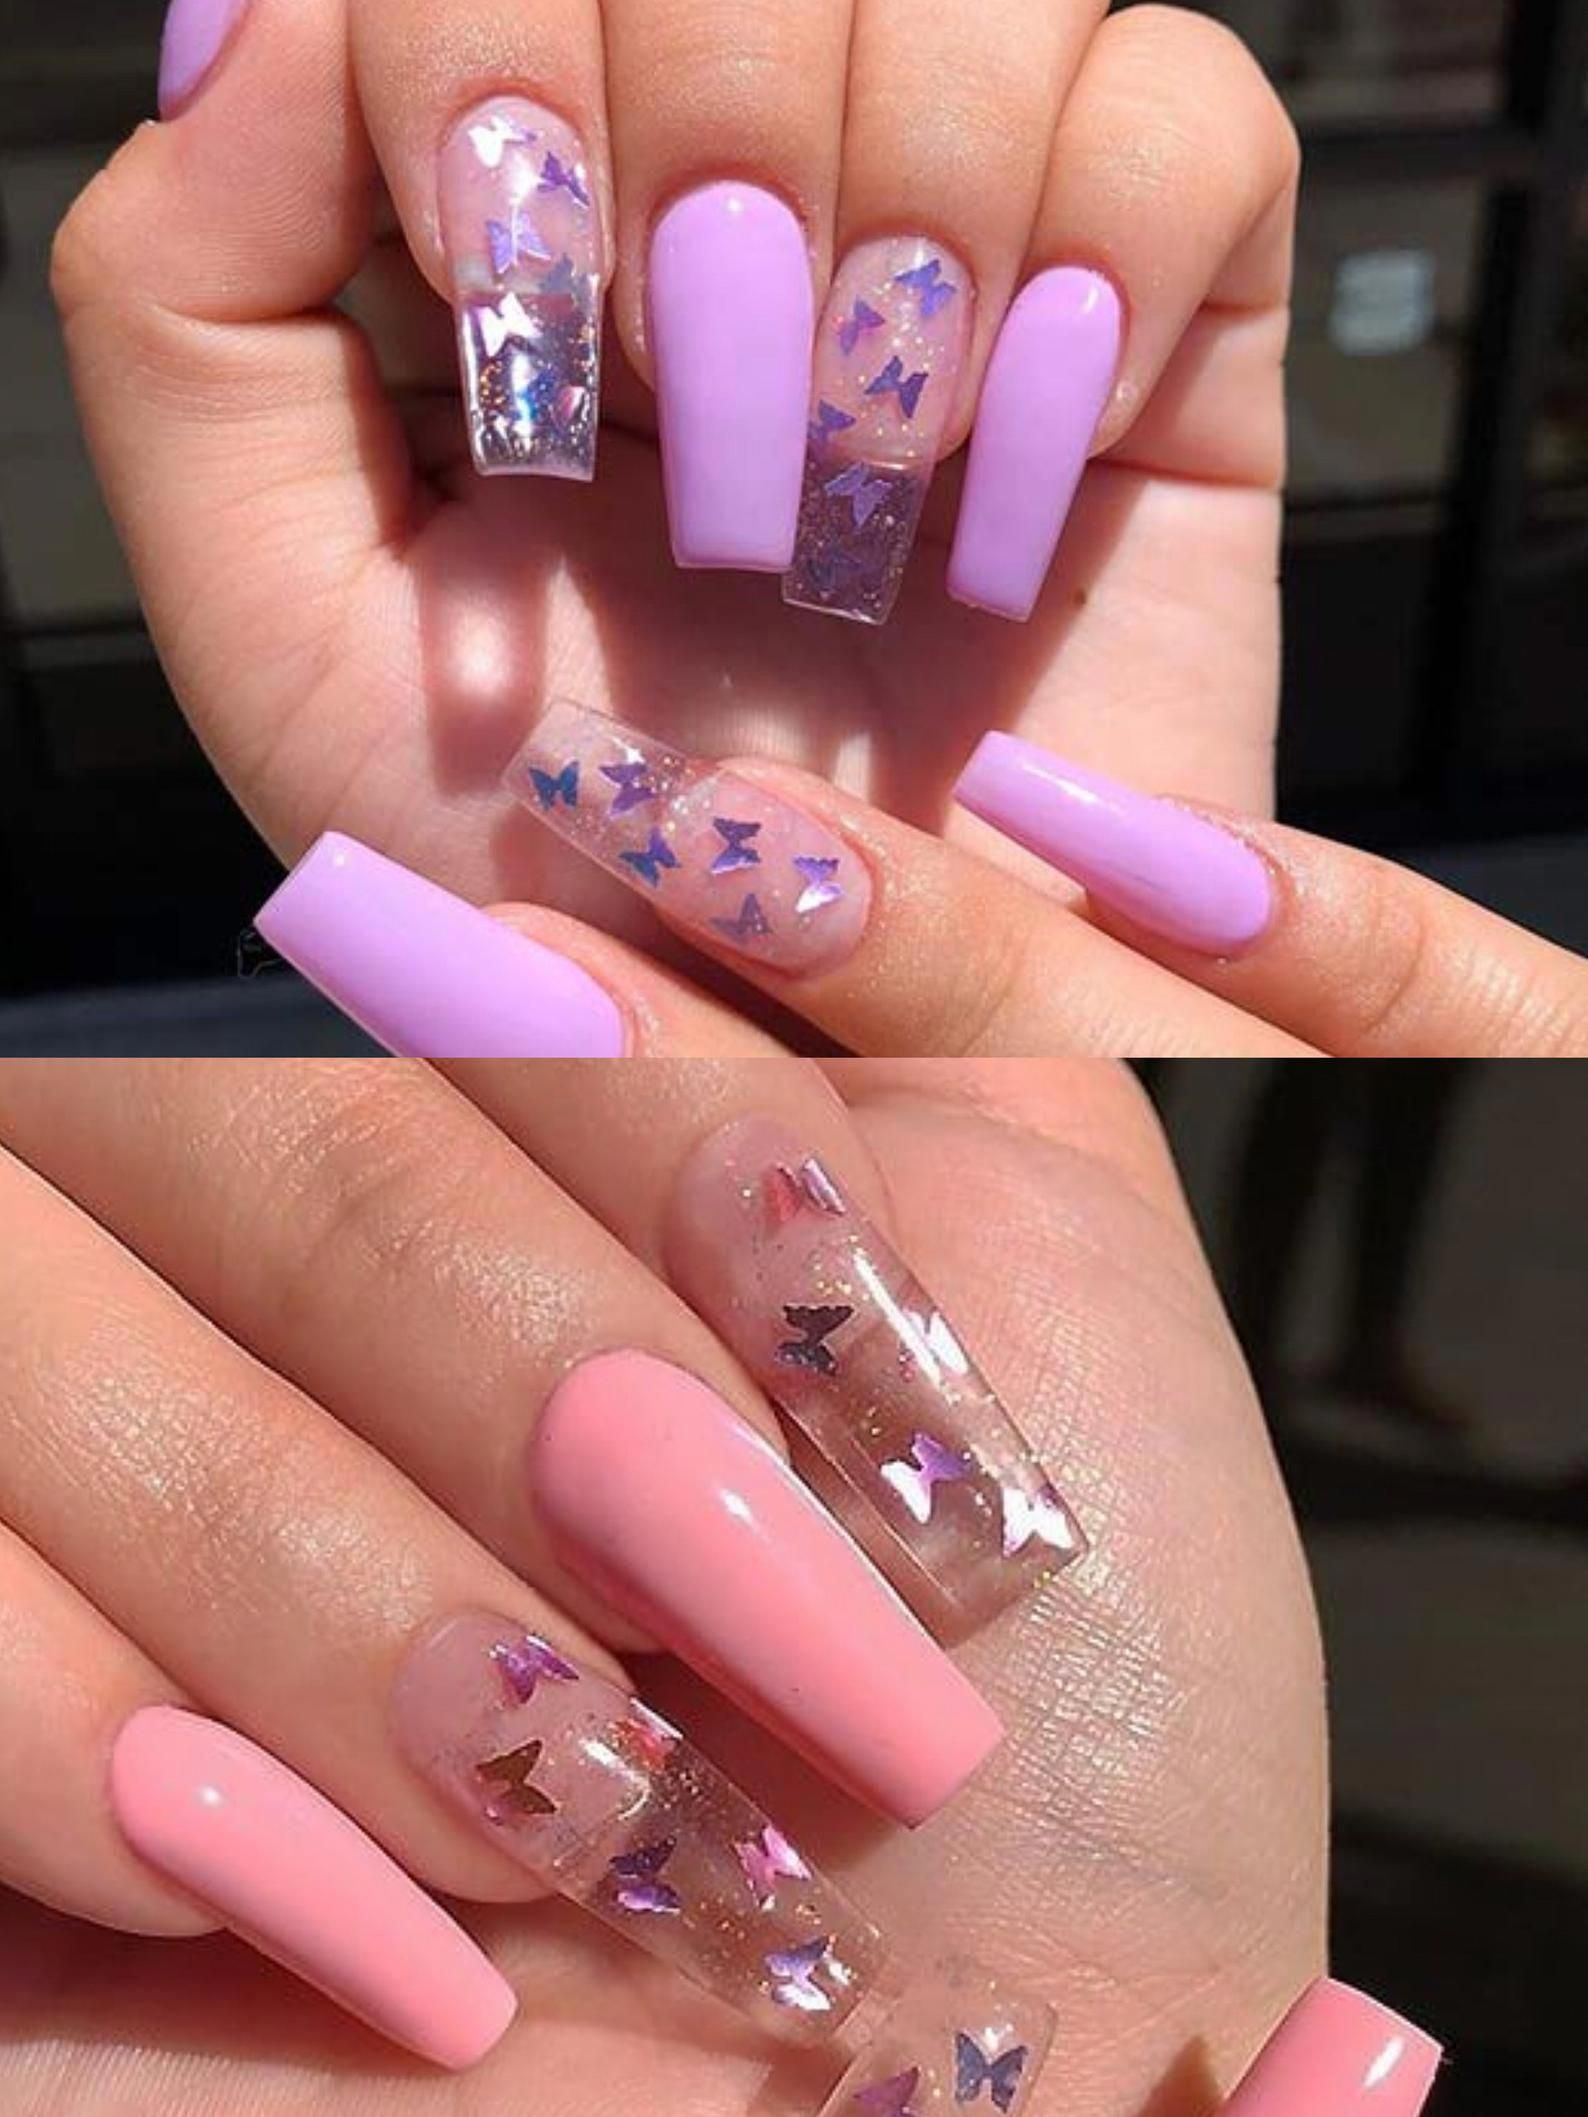 30 Acrylic Nails To Copy Now In 2020 Halloween Nails Goth Nails Cute Nails